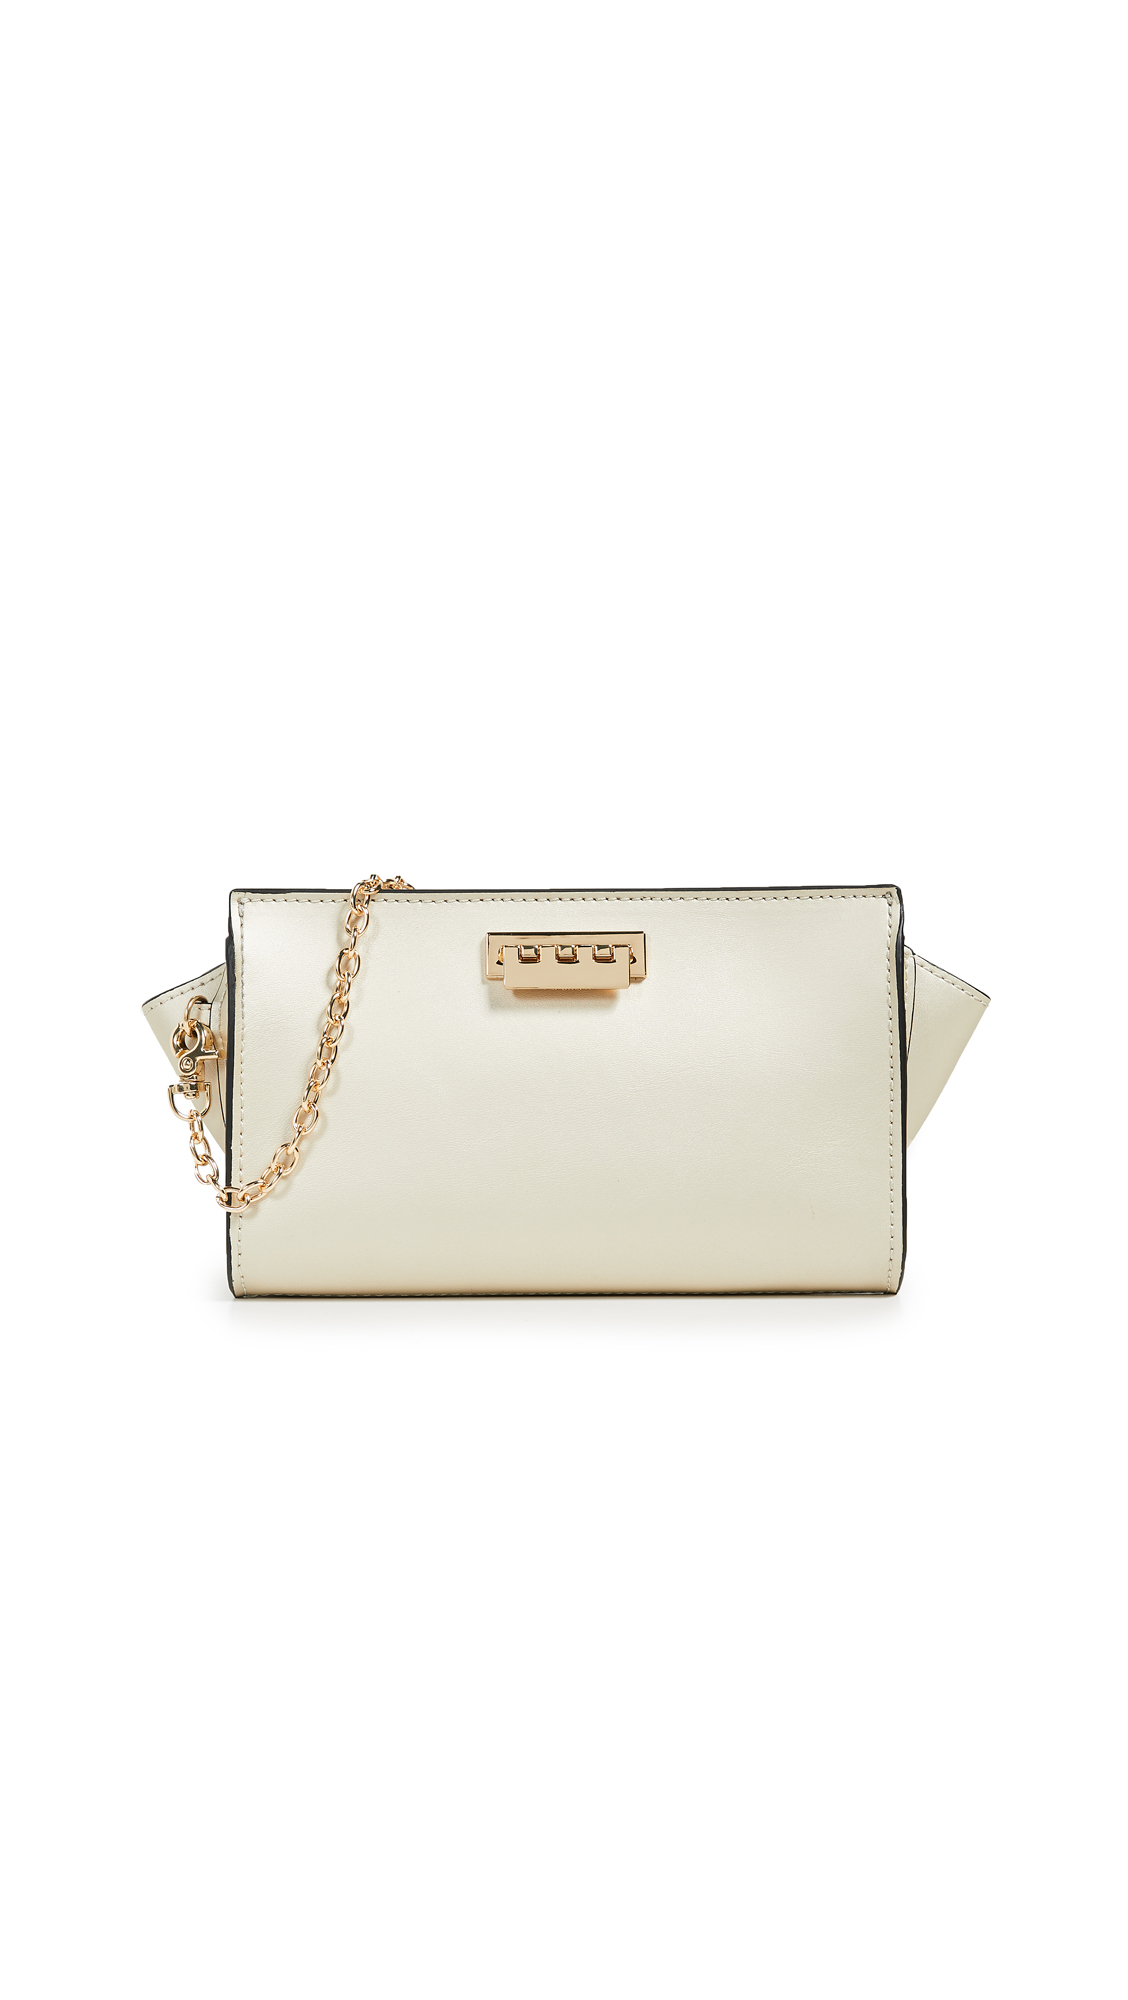 Eartha Iconic Phone Wallet Crossbody Bag in Champagne